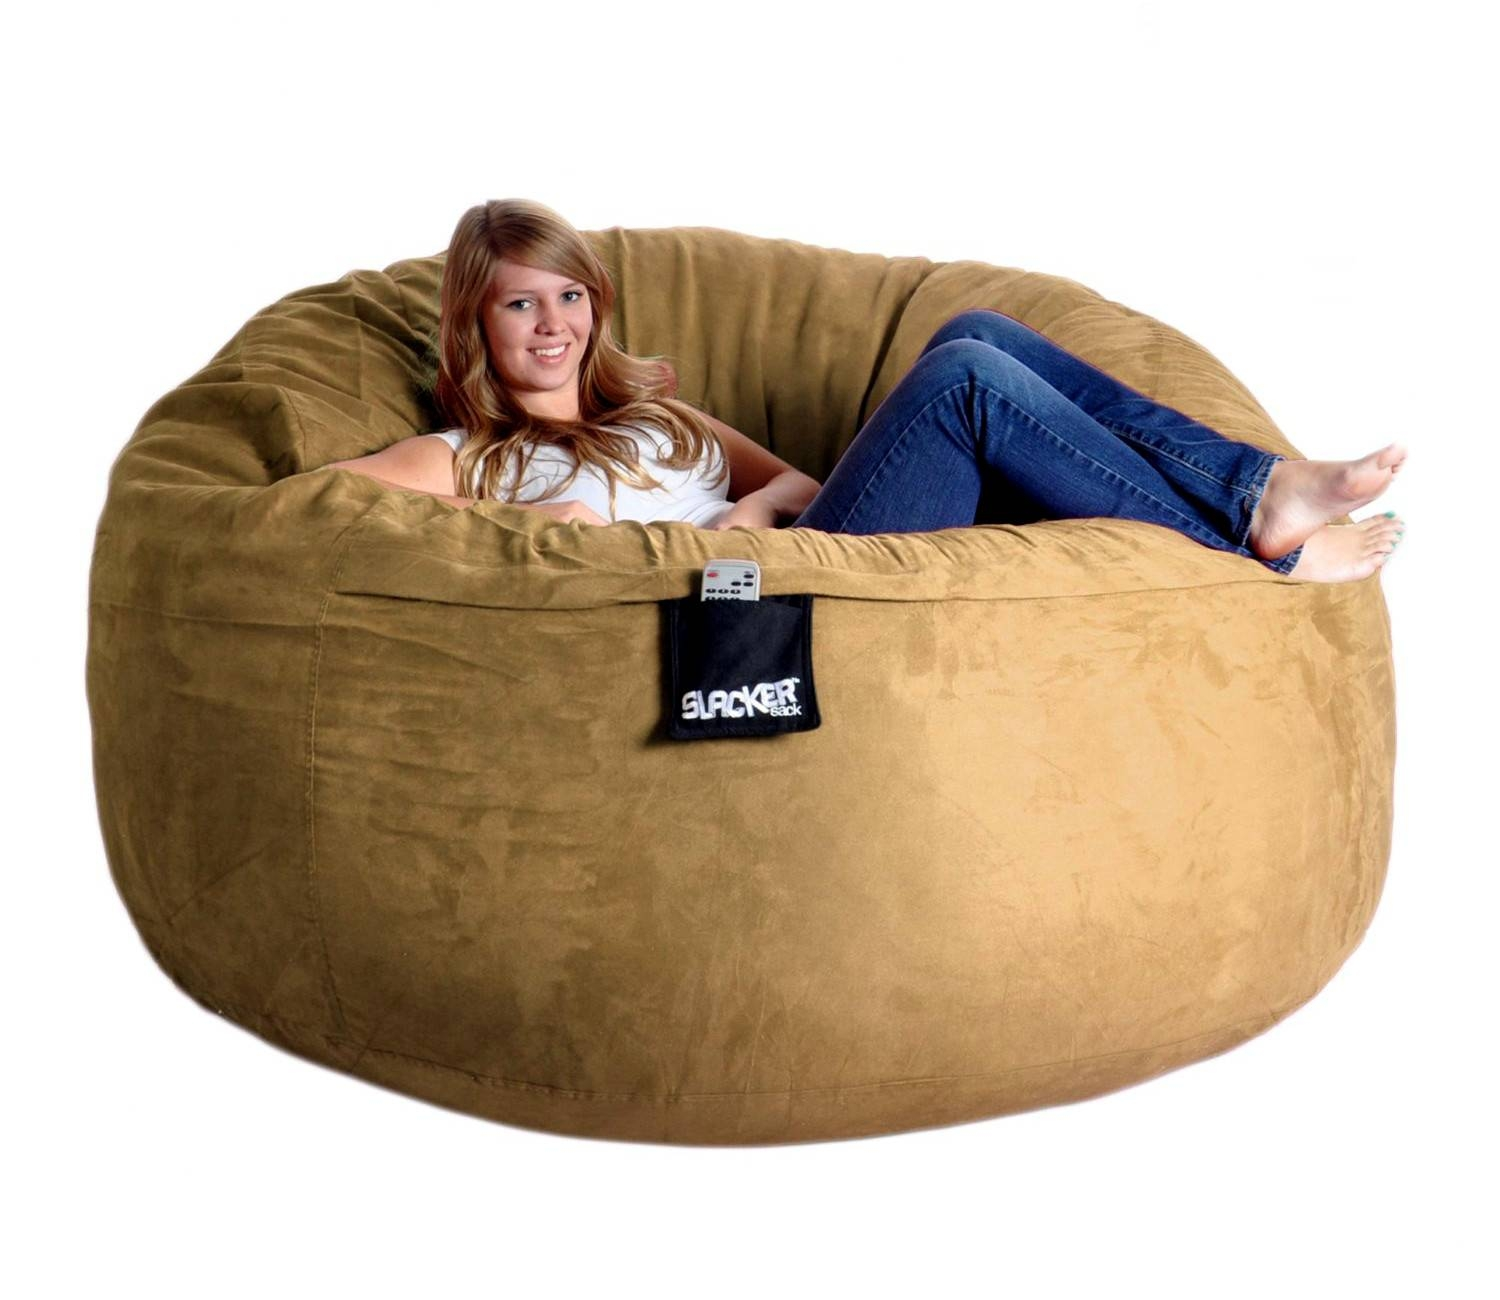 Giant Beanbag | Stuff You Should Have regarding Giant Bean Bag Chairs (Image 14 of 15)